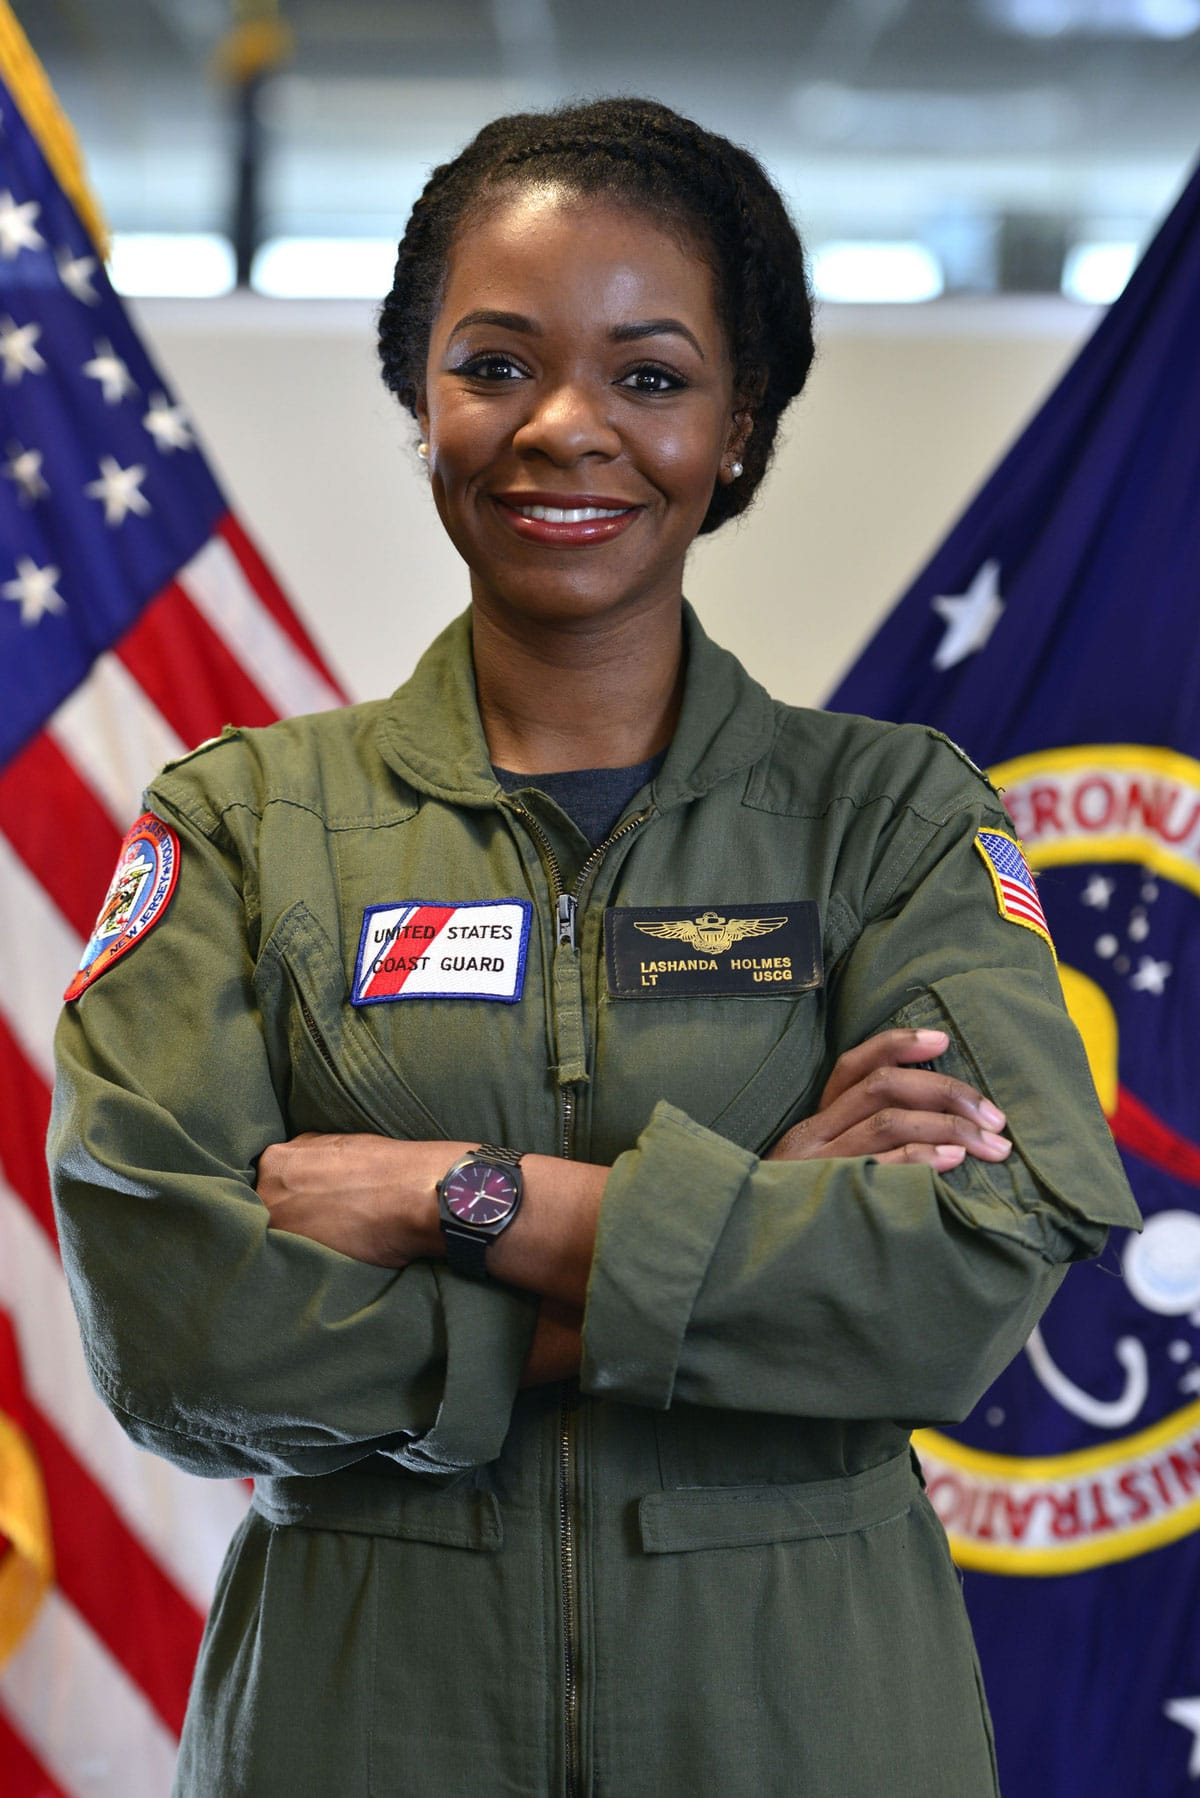 Lt. La'Shanda Holmes, the Coast Guard's first African American female helicopter pilot, and current White House Fellow (assigned to NASA).